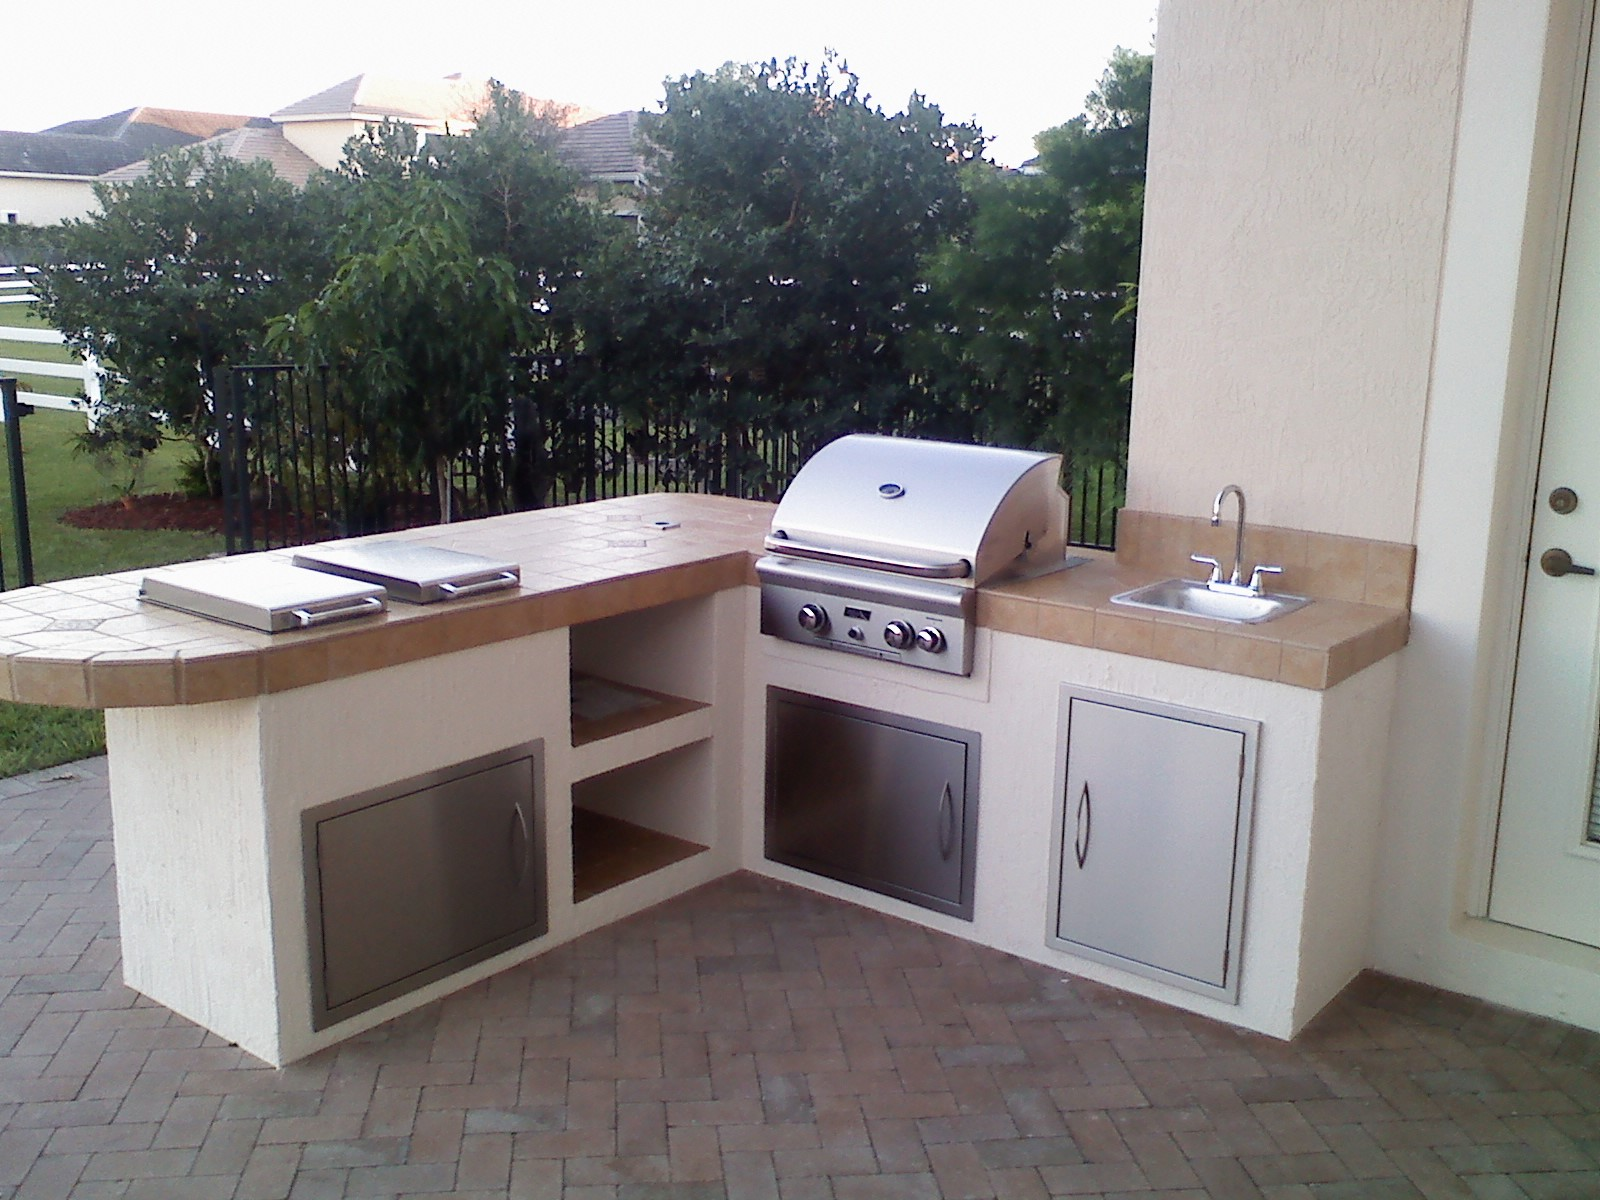 Superbe AOG24 Built In American Outdoor Grill Island Outdoor Kitchen With AOG Side  Burners